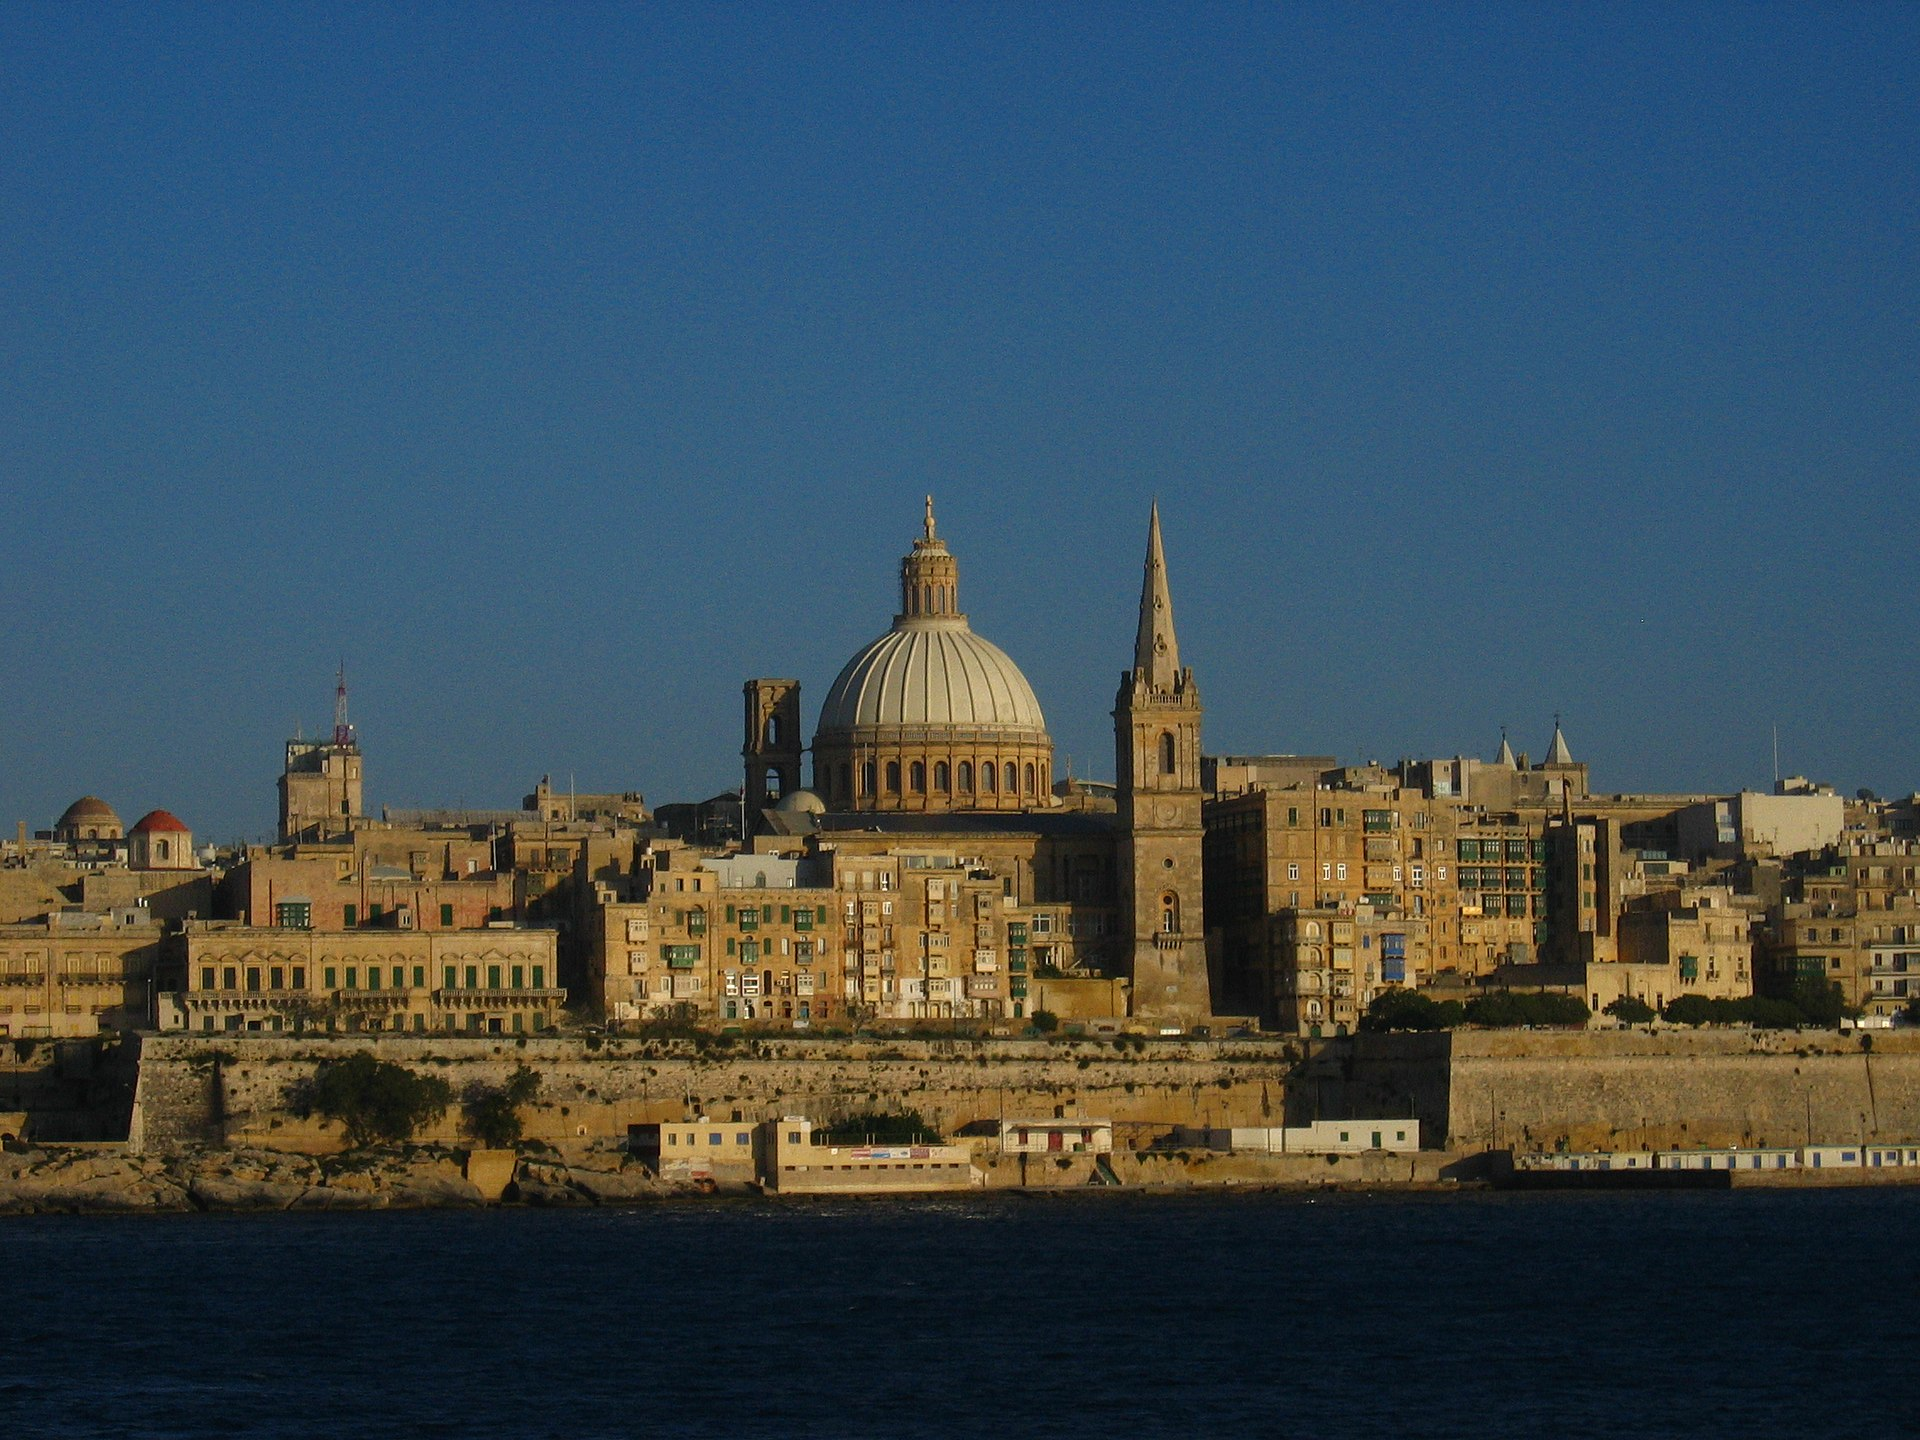 Valletta, Malta's historical capital city